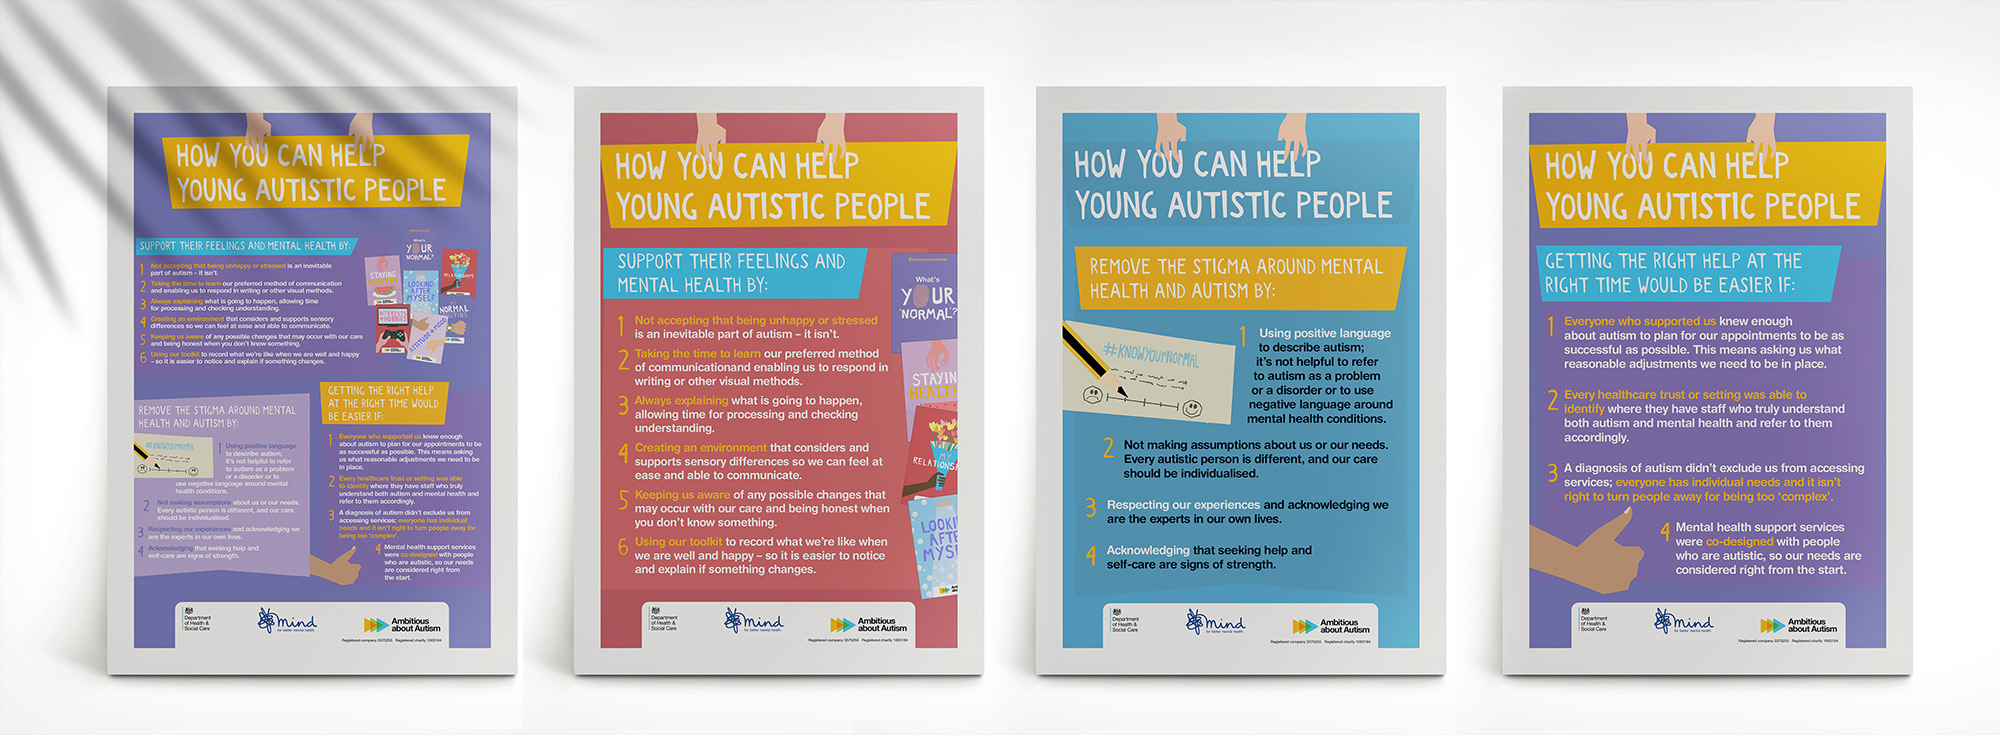 Ambitions about autism Know Your Normal Webinars